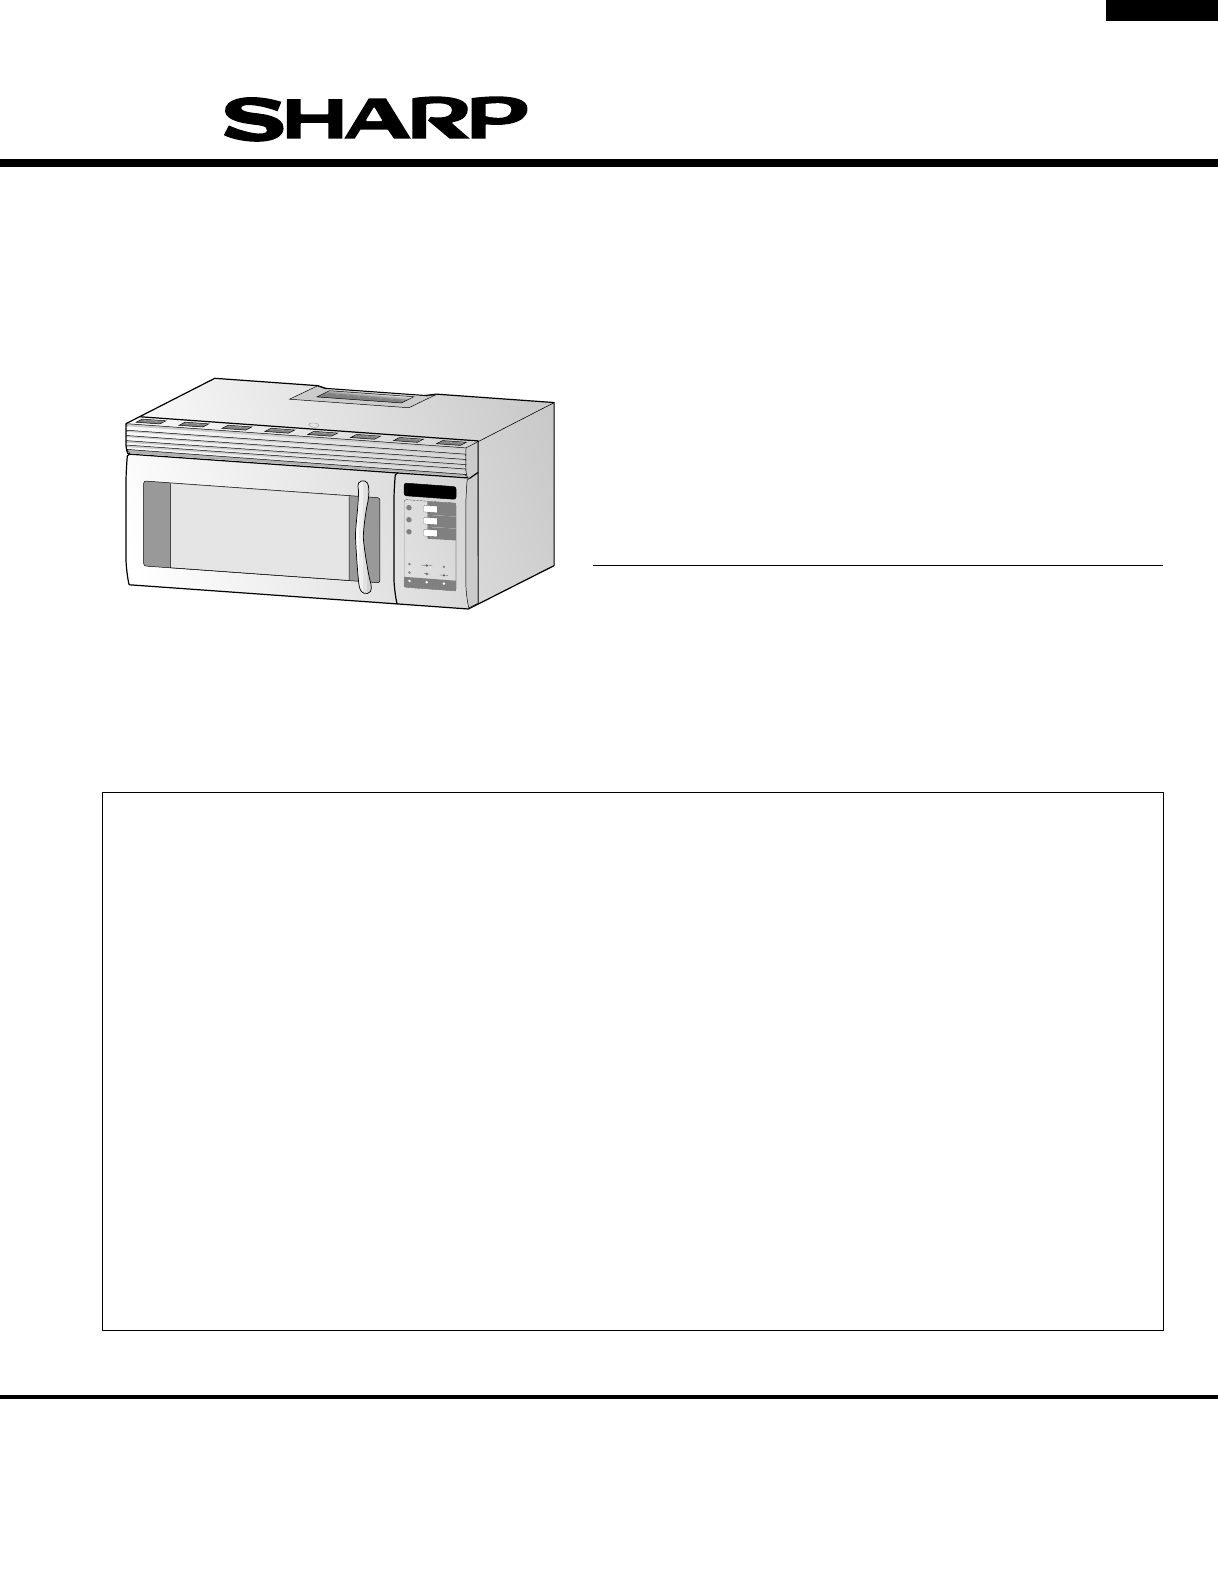 Sharp Microwave Oven R 1482 User Guide Manualsonlinecom Control Panel Circuit Diagram And Parts List For Microwaveparts 1480